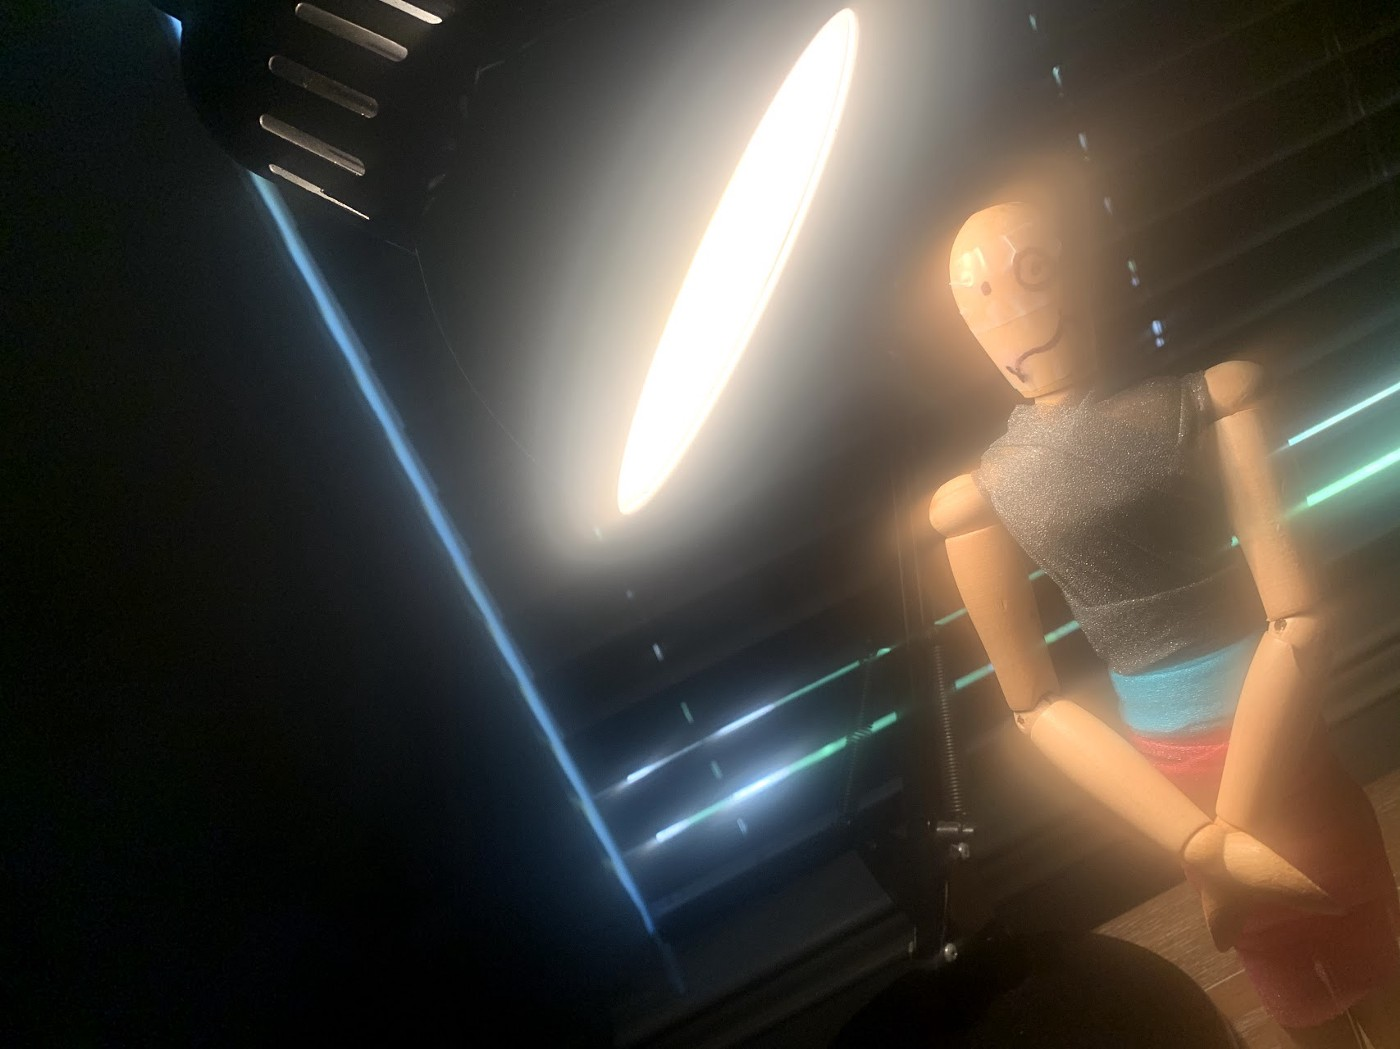 Mannequin stands with hands in from of body while a lamp shines over her from the left side.